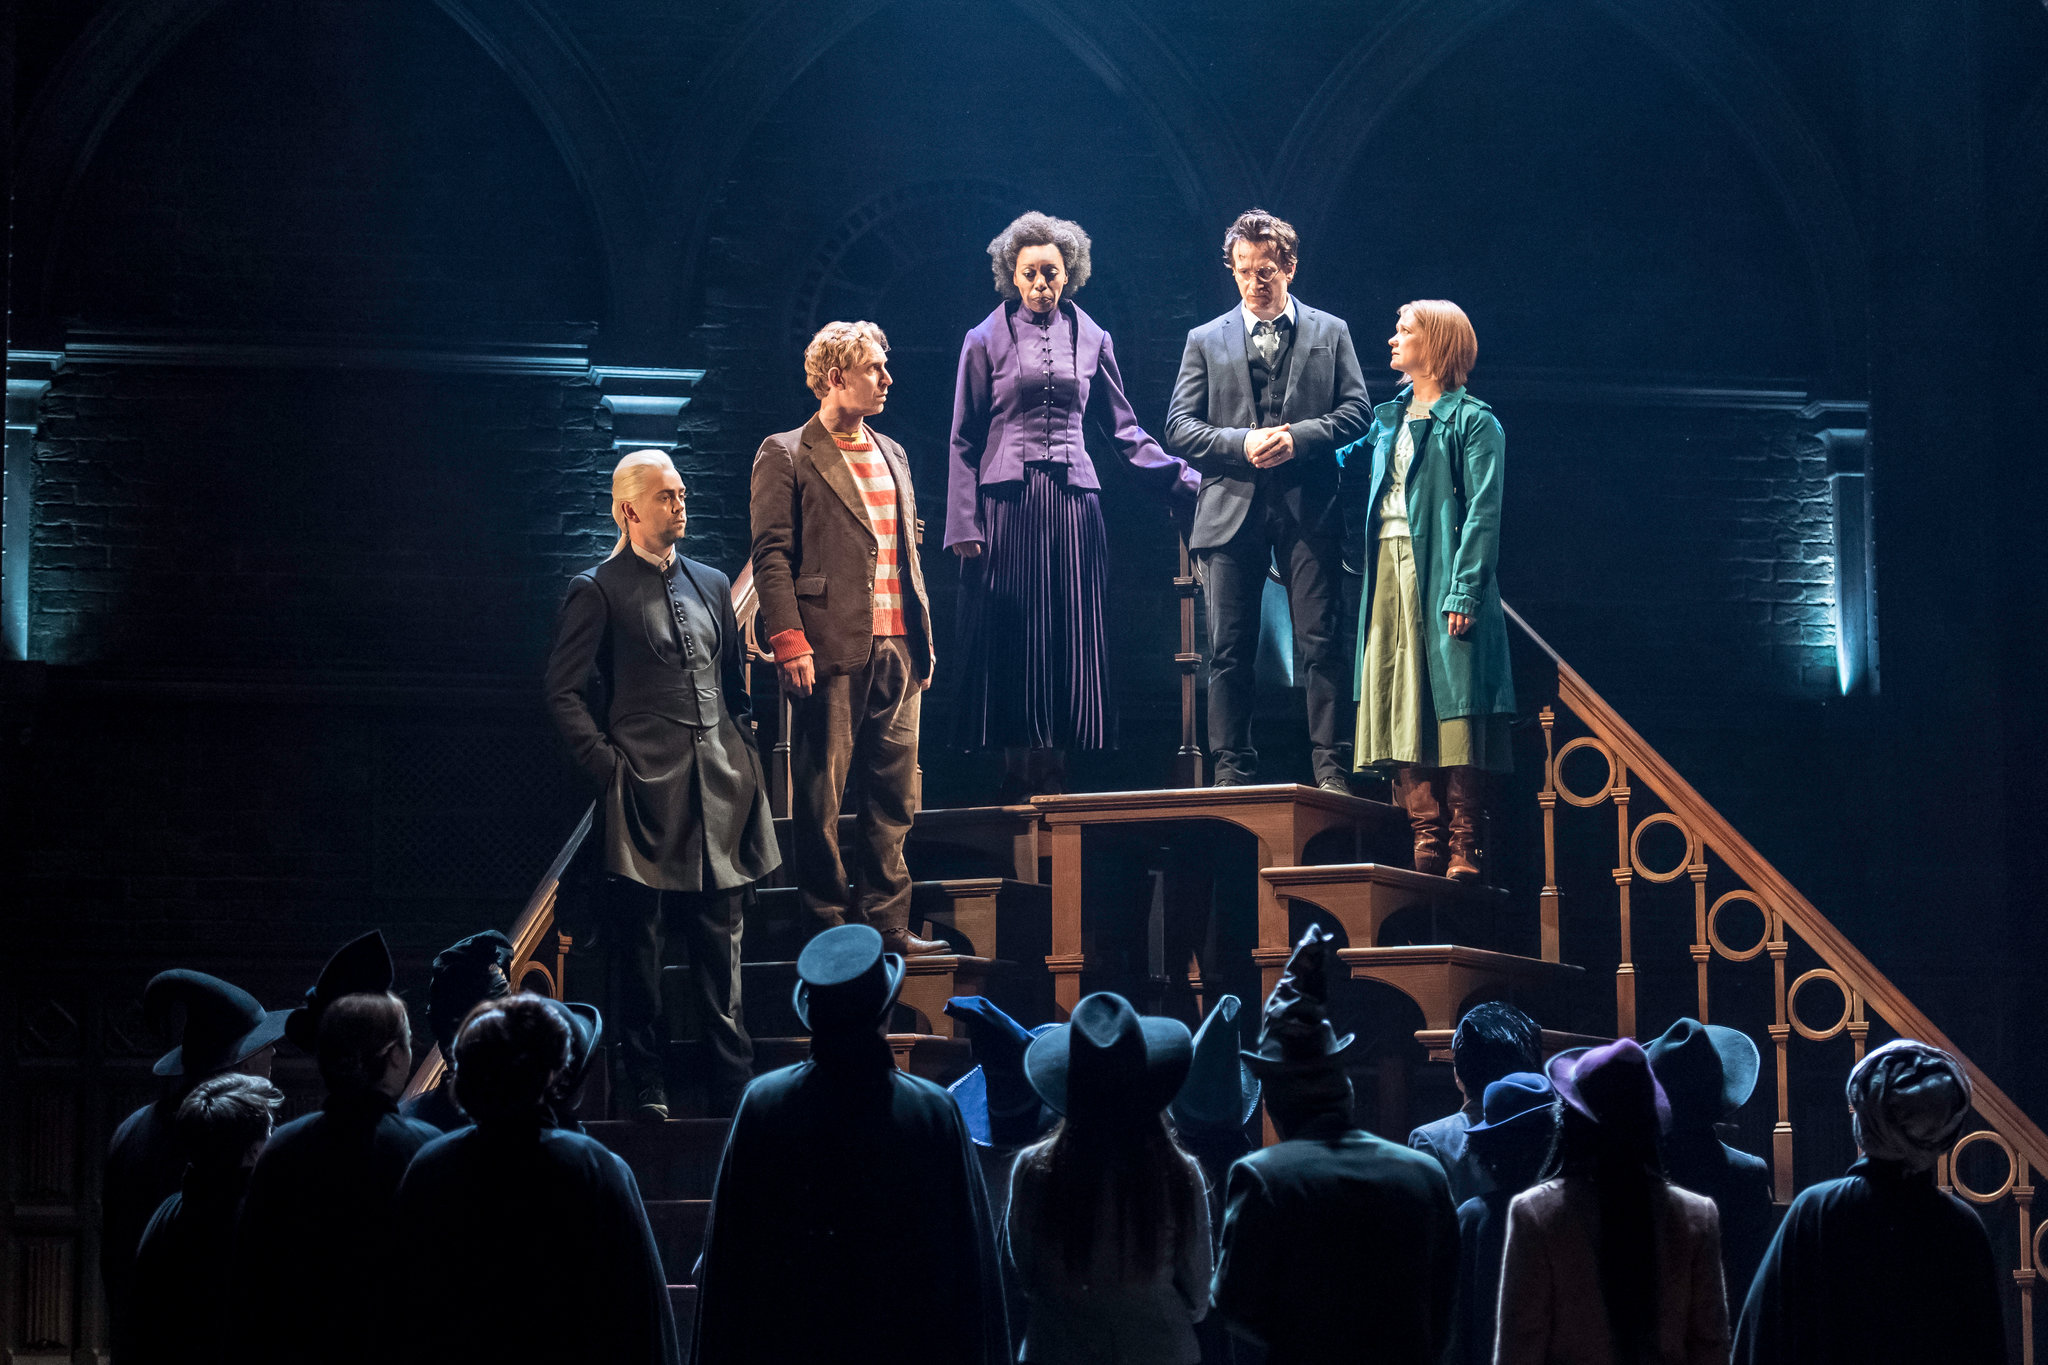 Harry Potter and The Cursed Child - Part 1 & 2 (9/24 7:30PM & 9/25 7:30PM) at Lyric Theatre